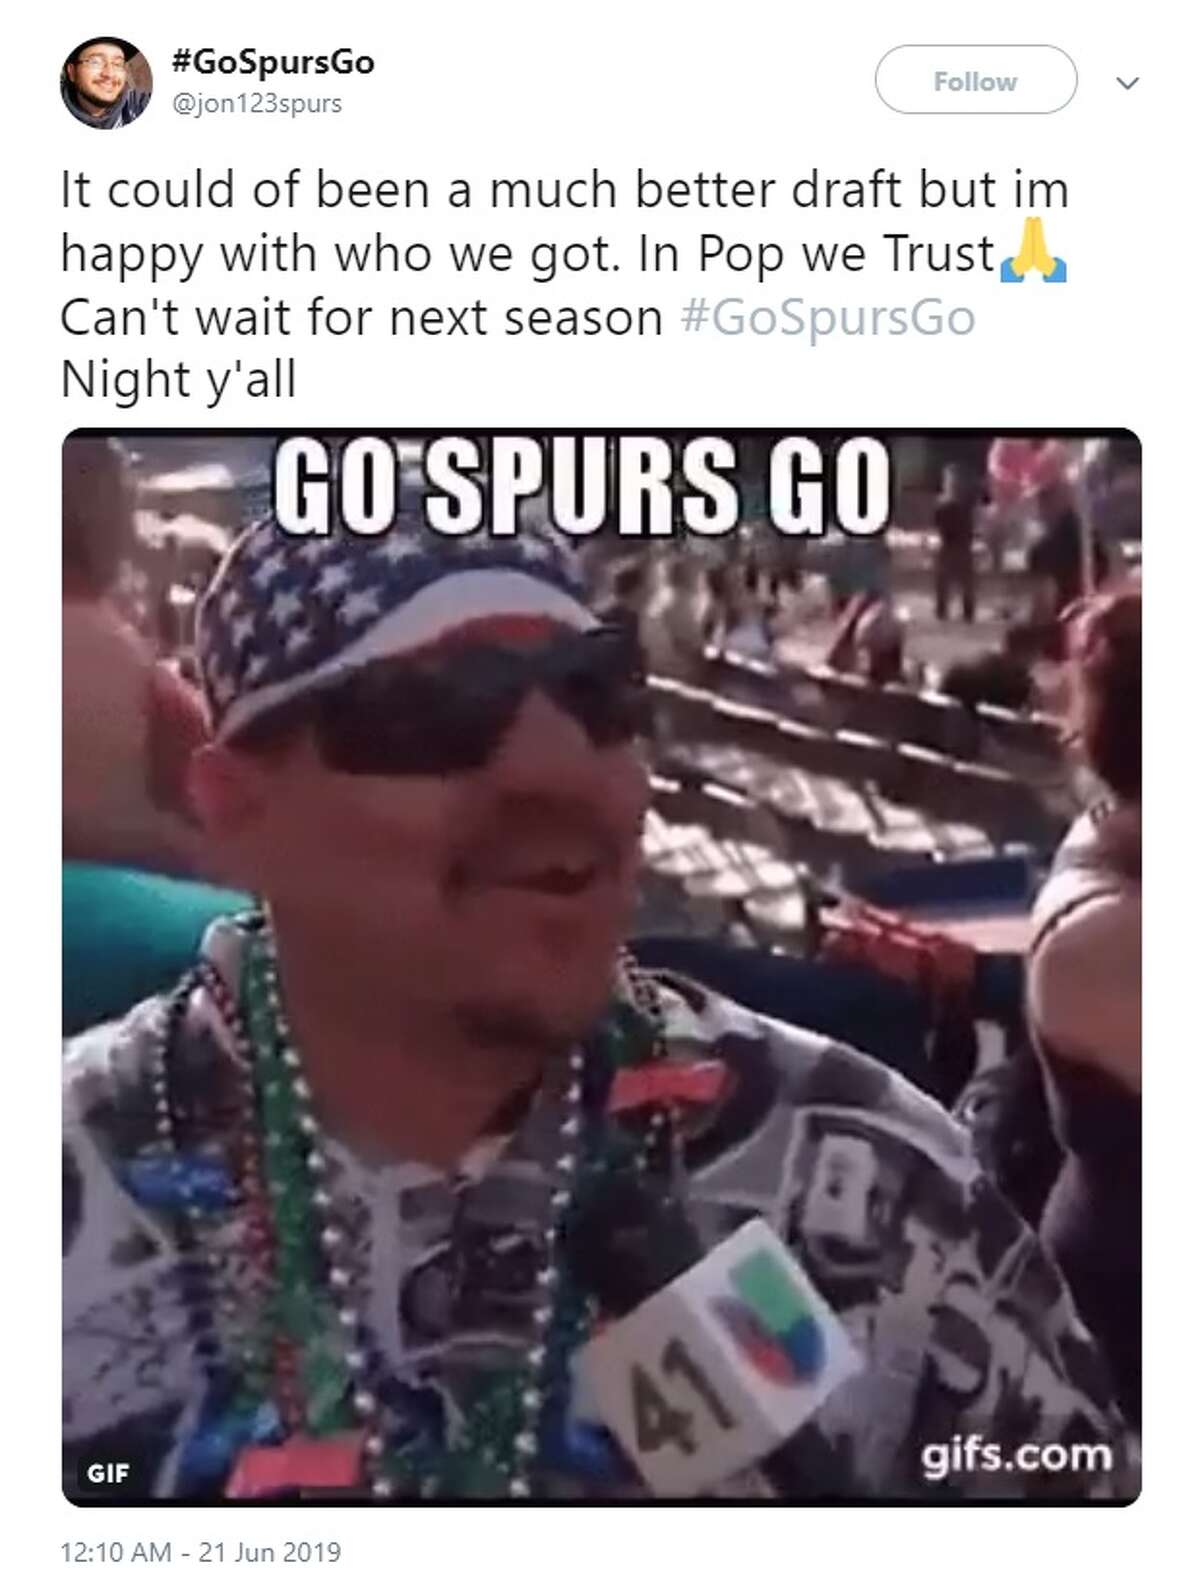 @jon123spurs tweeted about the Spurs draft picks during the 2019 NBA Draft Thursday.